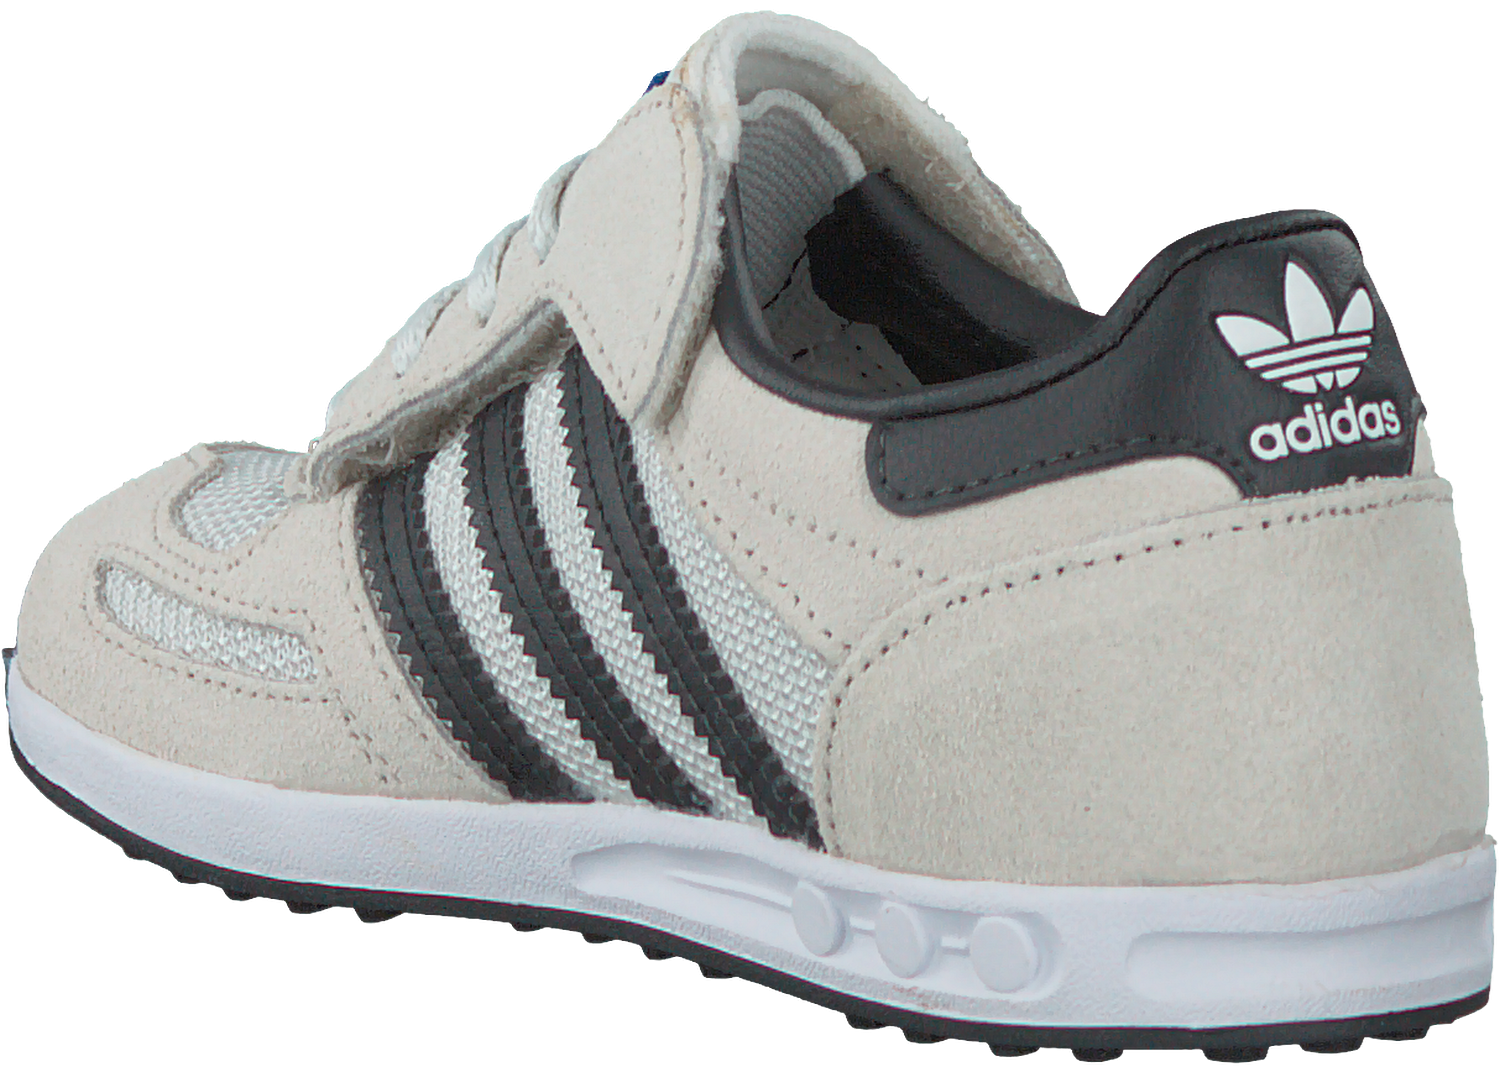 29f45cb9e1a Witte ADIDAS Sneakers LA TRAINER KIDS. ADIDAS. -50%. Previous